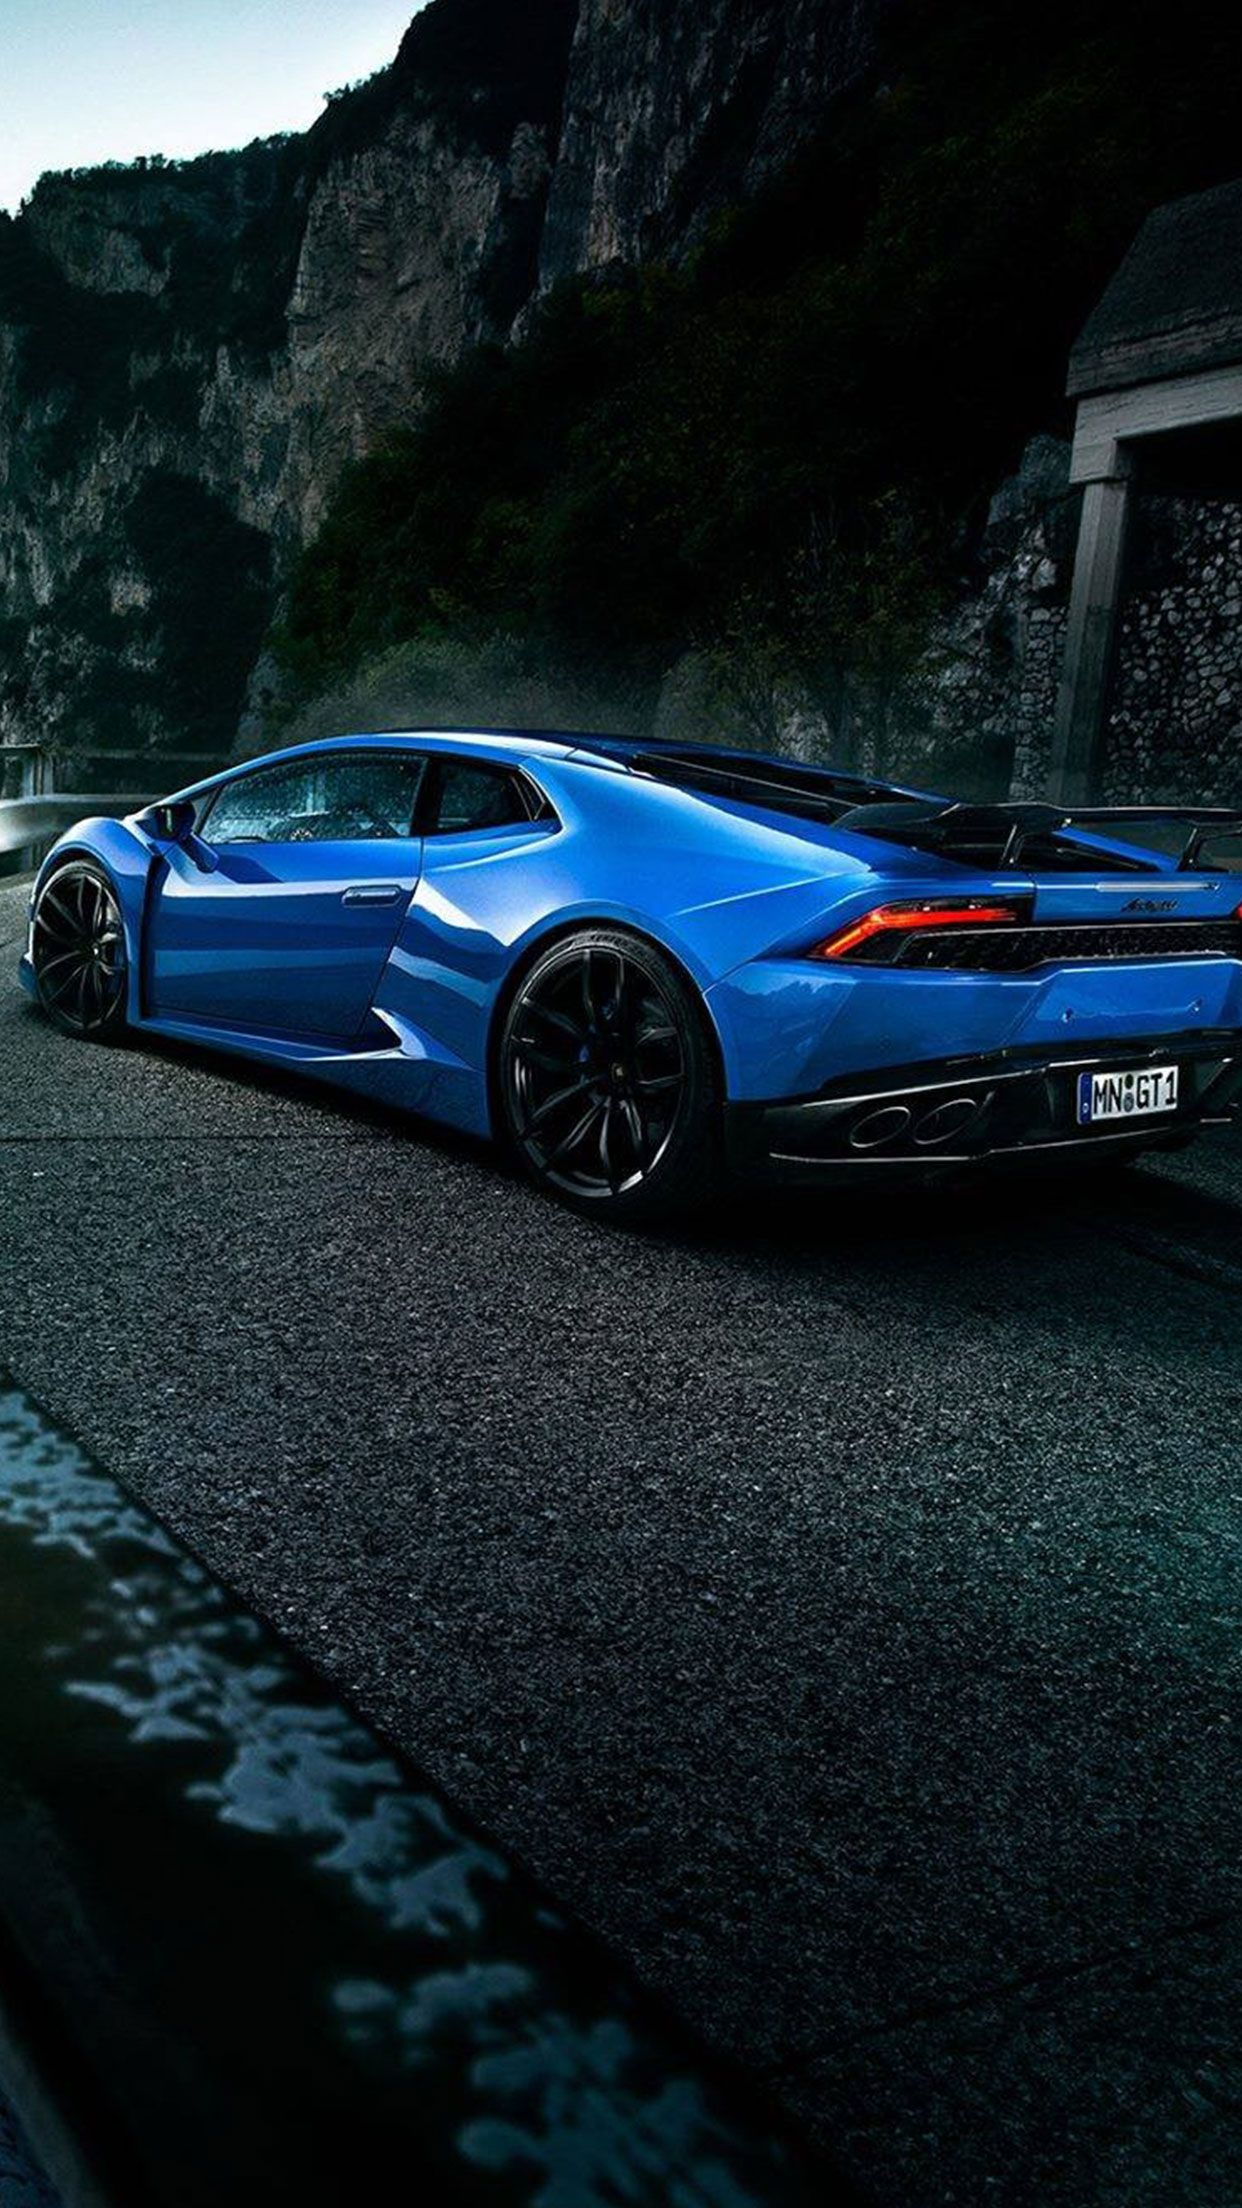 Free Download Blue Lamborghini Car Wallpaper Iphone Android Blue